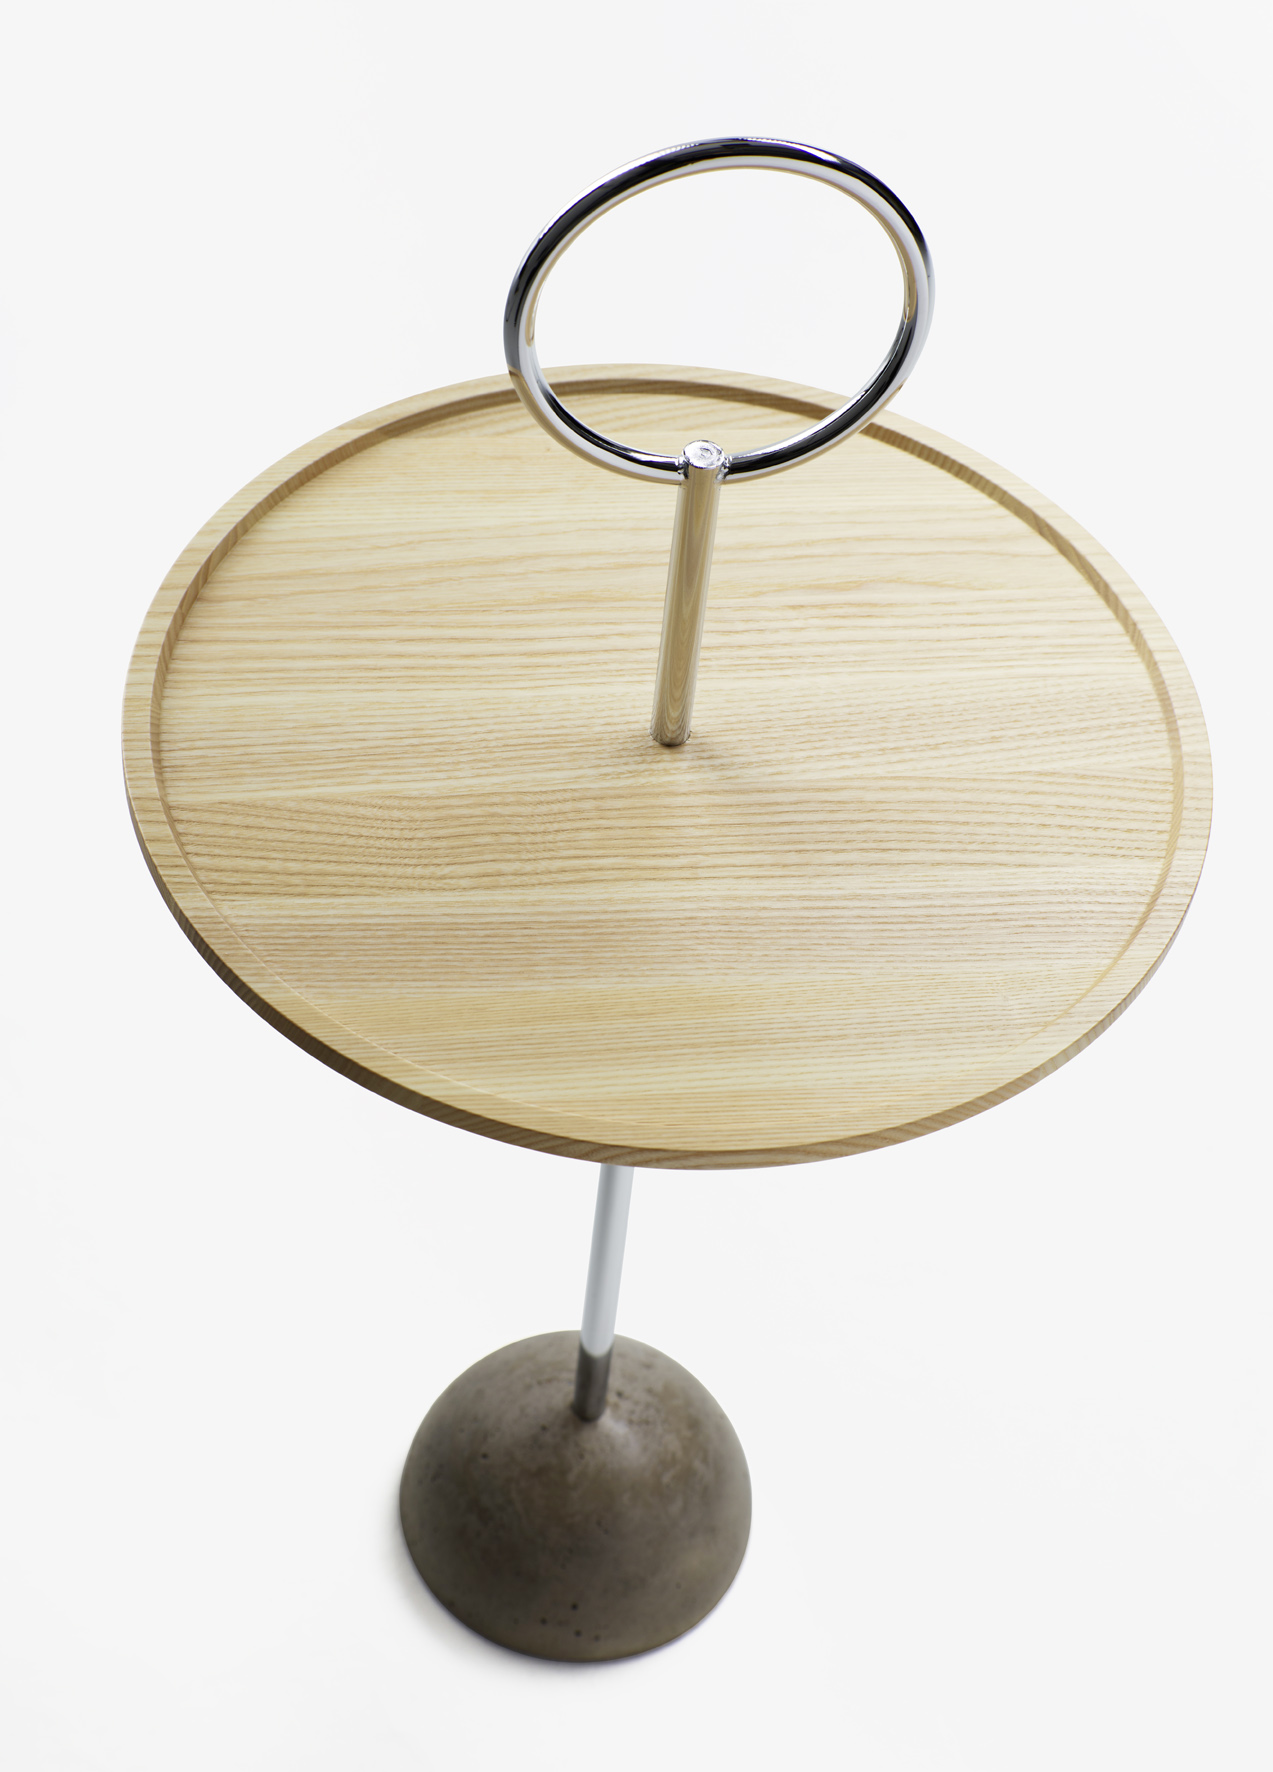 TABLE LOLLIPOP by Karl Andersson & Söner | Archello